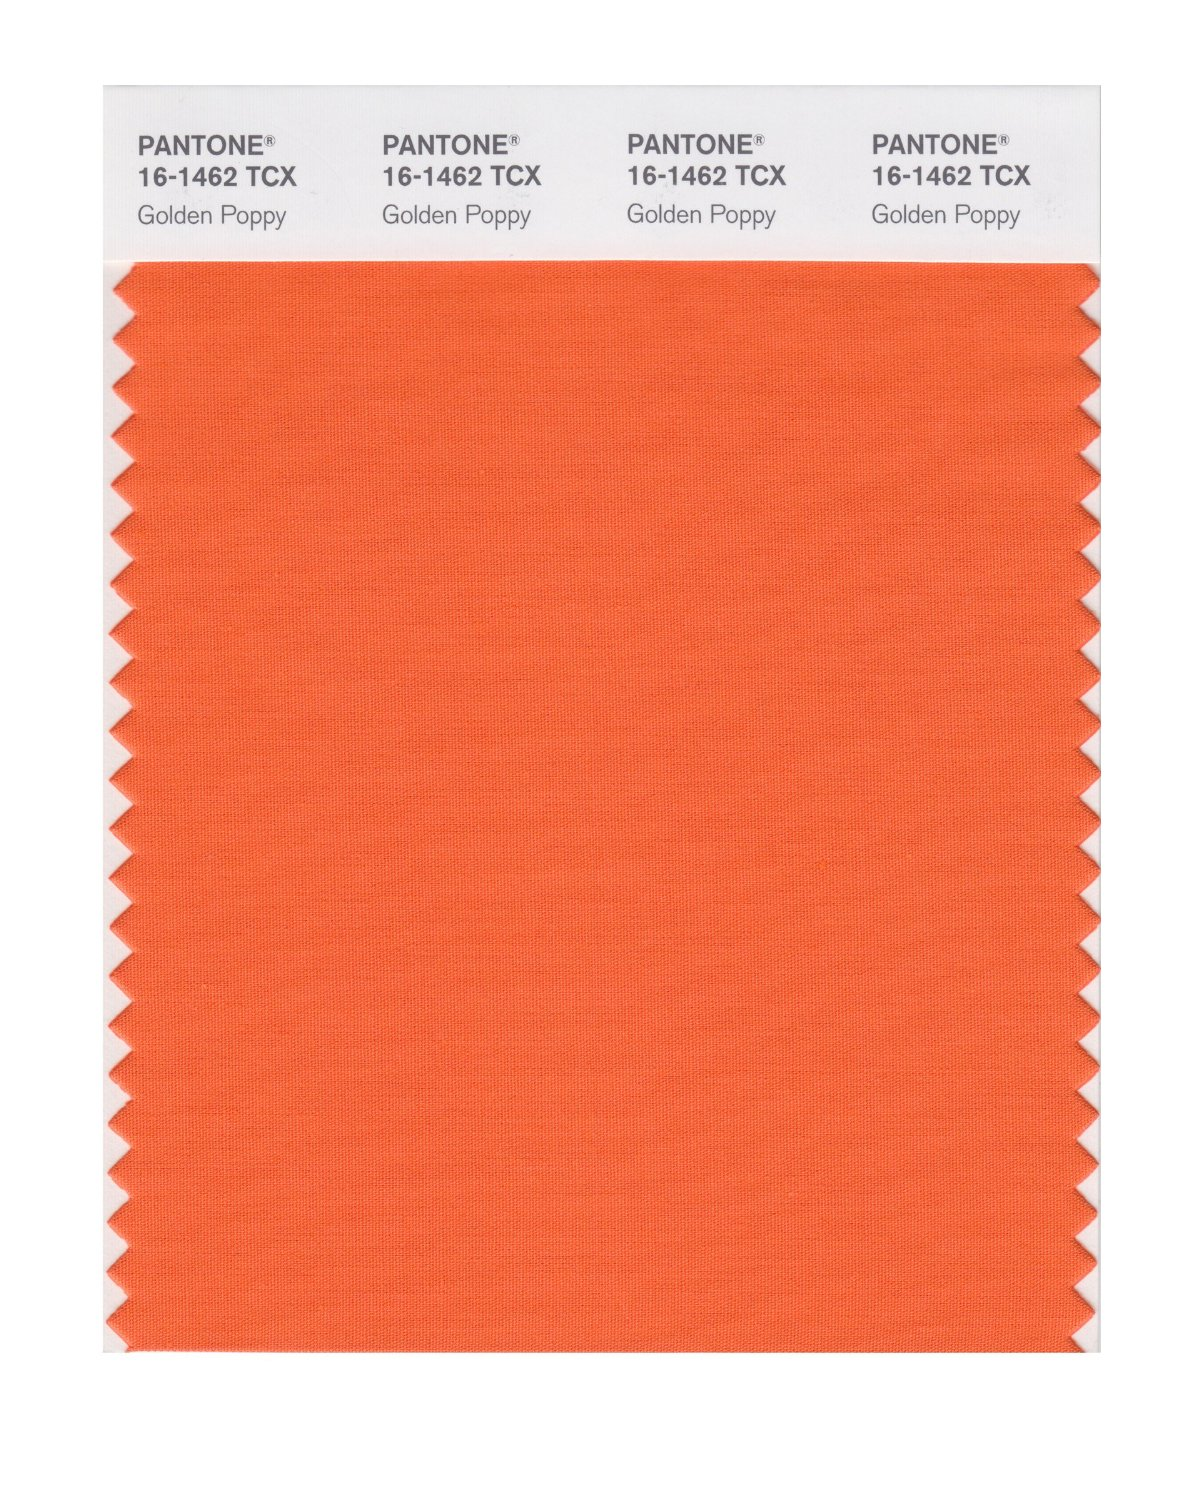 Pantone Smart Swatch 16-1462 Golden Poppy